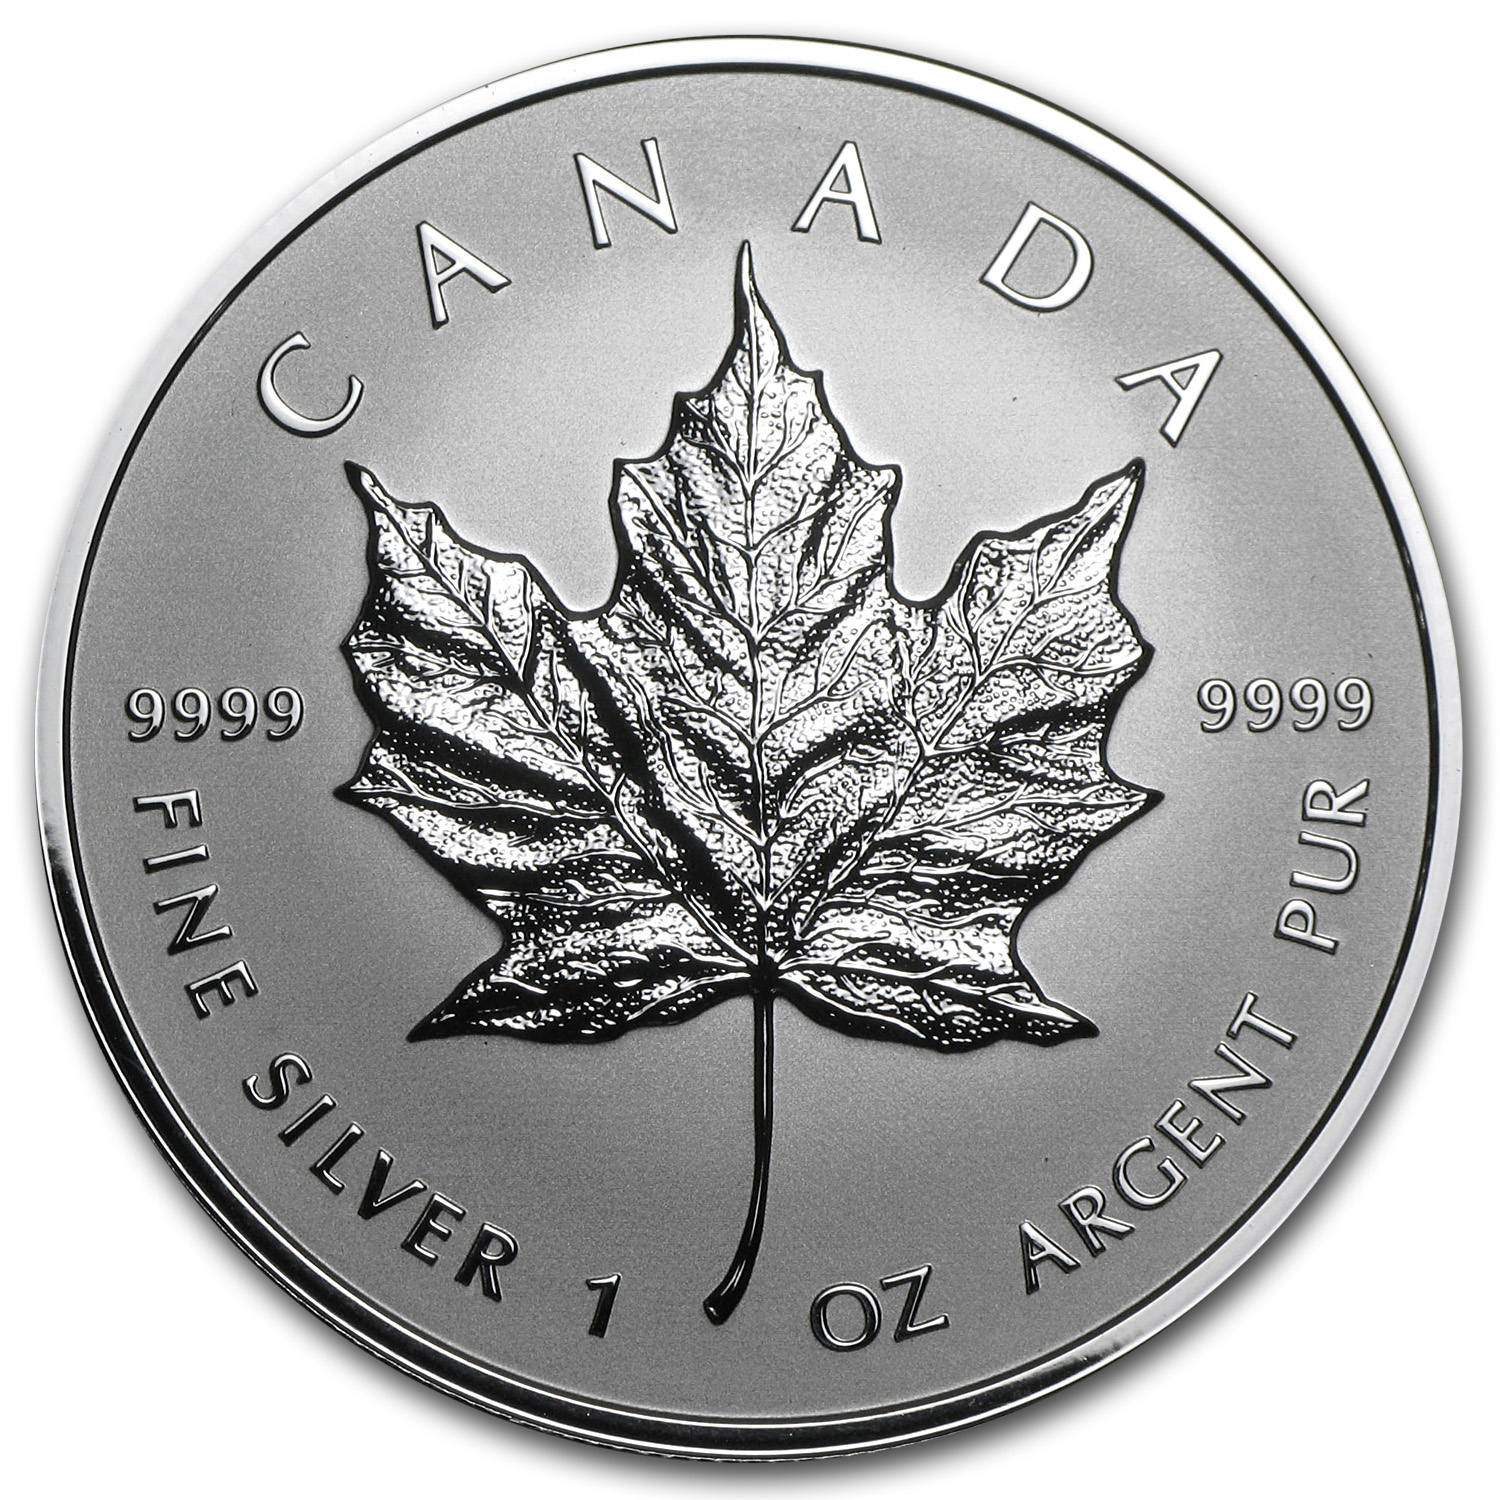 2014 1 oz Silver Reverse Proof Canadian Maple Leaf